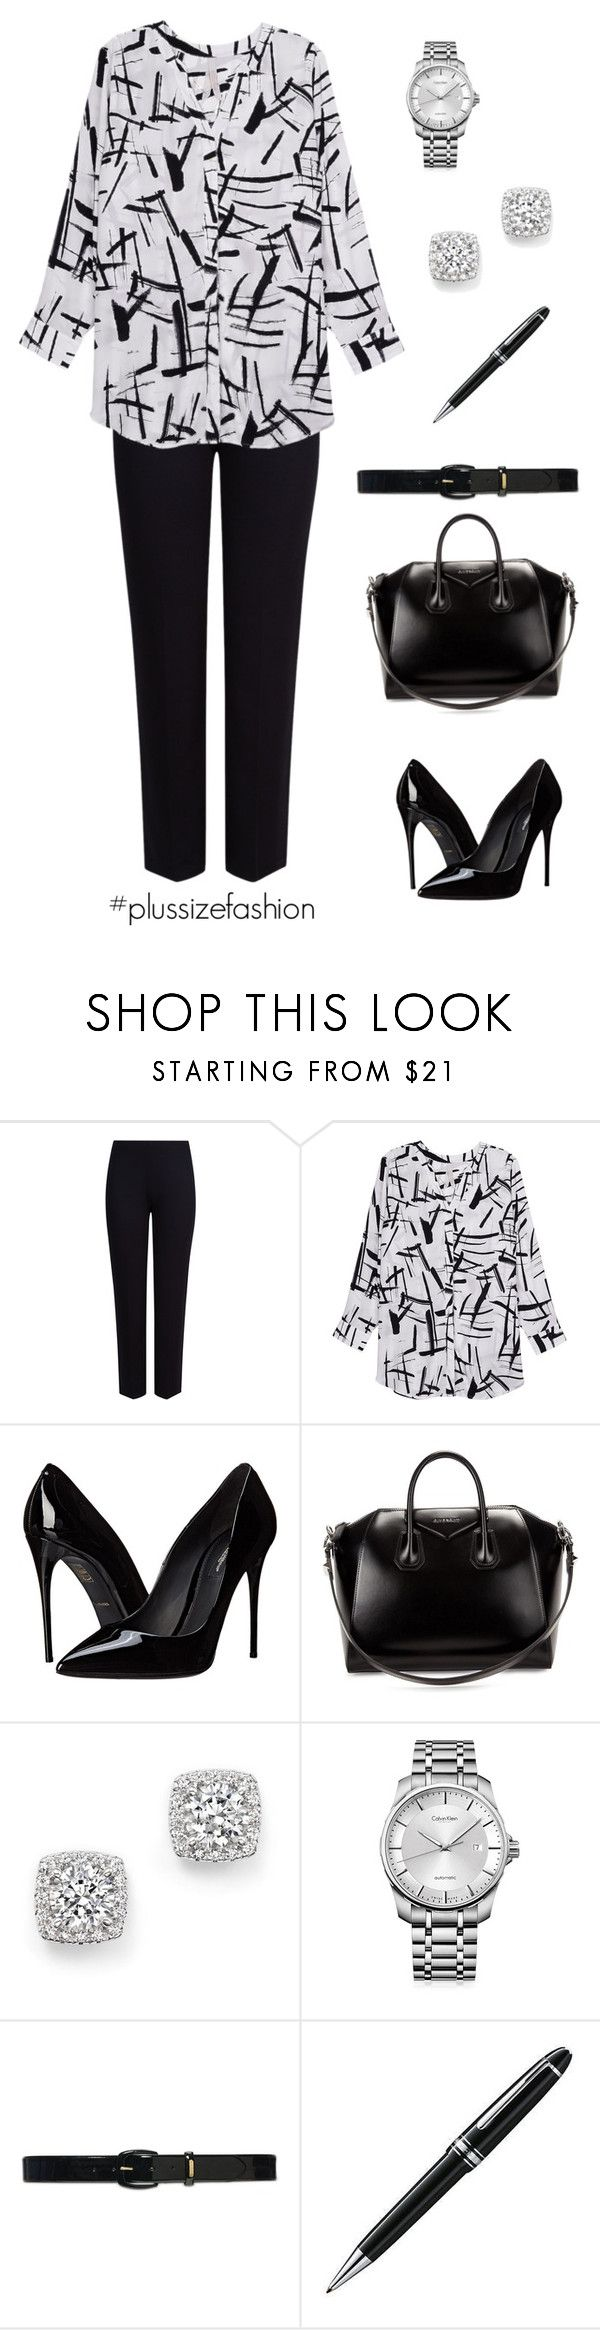 """01.21.16"" by socalosukity ❤ liked on Polyvore featuring M&S Collection, Melissa McCarthy Seven7, Dolce&Gabbana, Givenchy, Bloomingdale's, Calvin Klein, Lauren Ralph Lauren, Montblanc and plus size clothing"